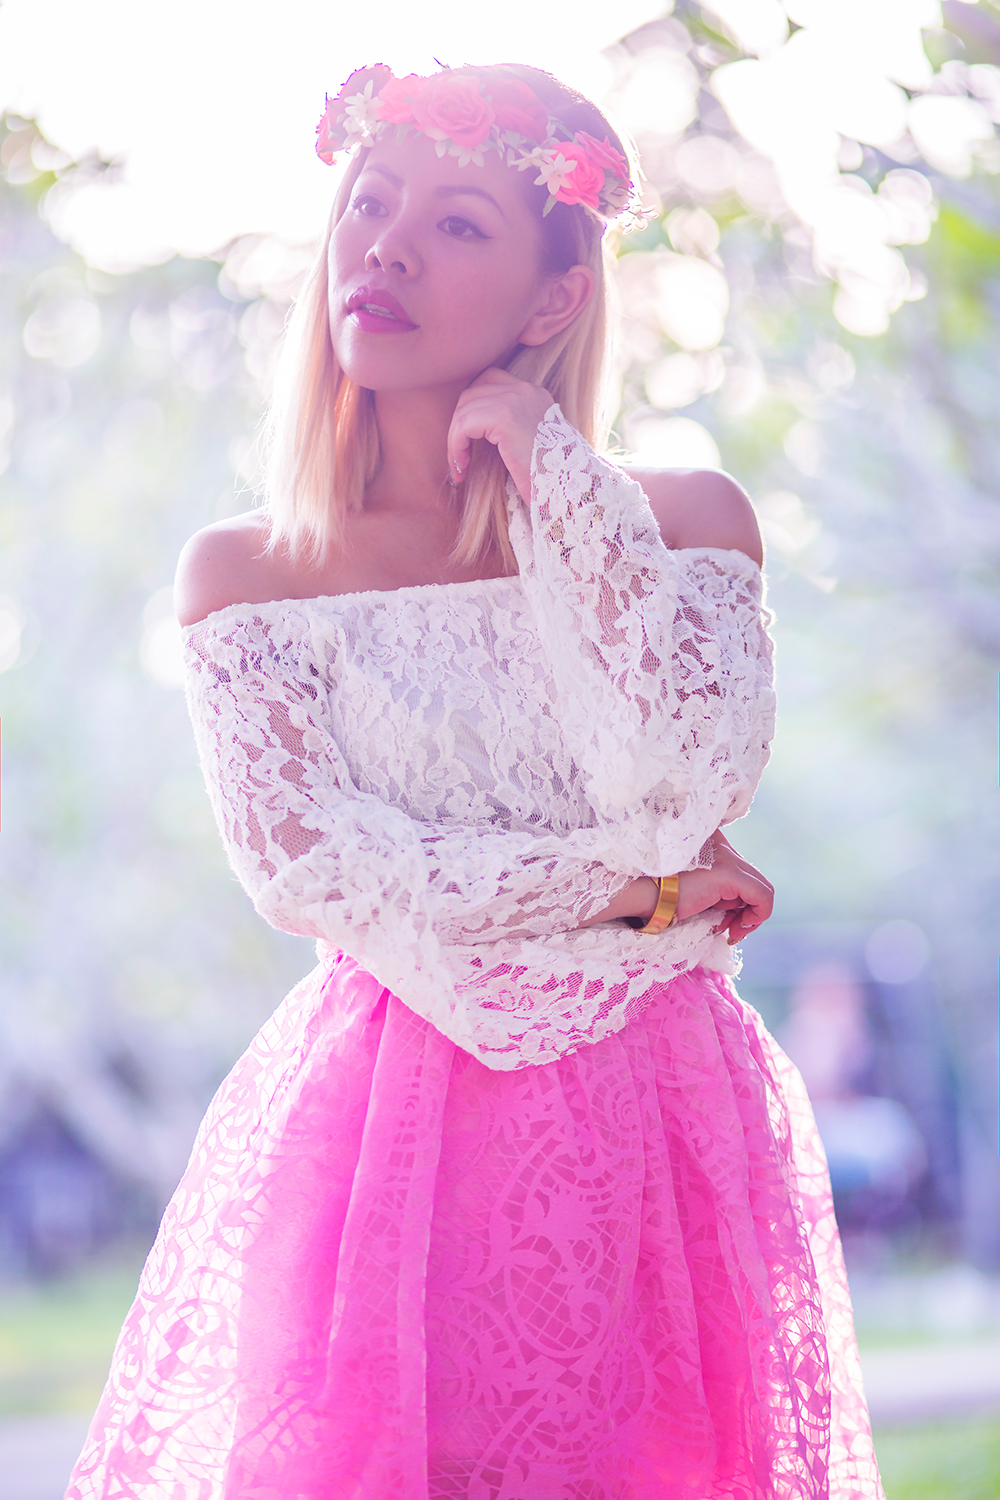 Crystal Phuong- Singapore Fashion Blog- Beautiful portrait in the golden hour